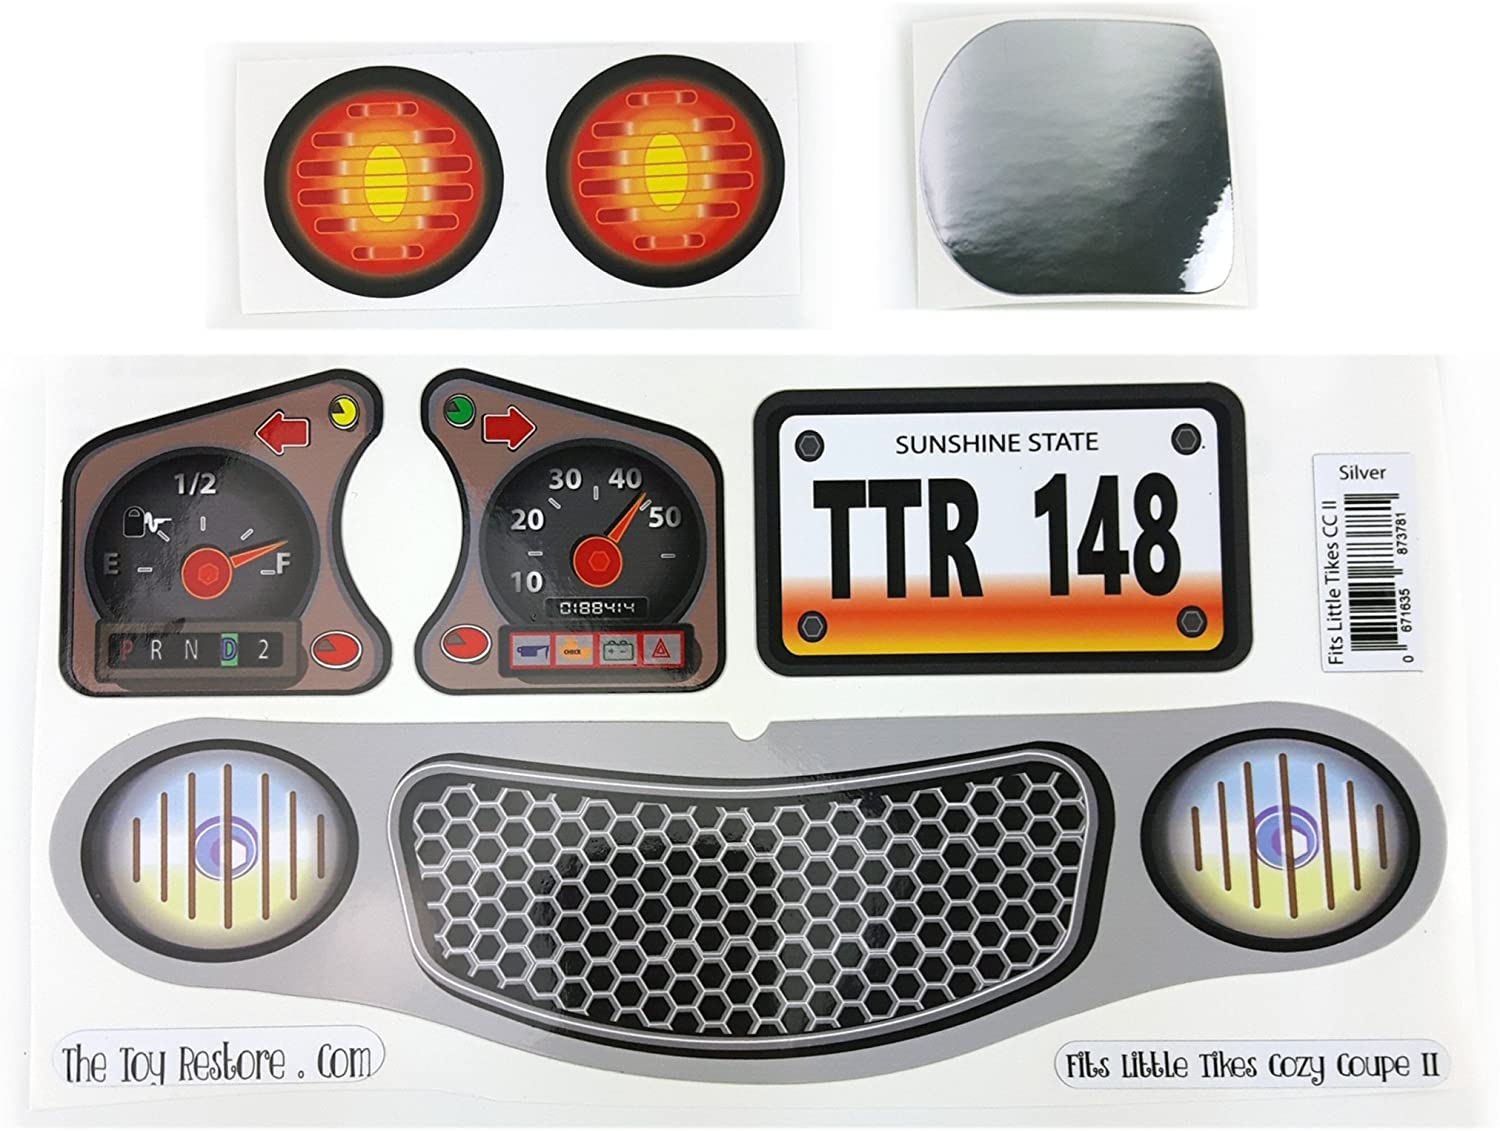 The Toy Restore Replacement Decals Stickers Fits Little Tikes Cozy Coupe II Grey